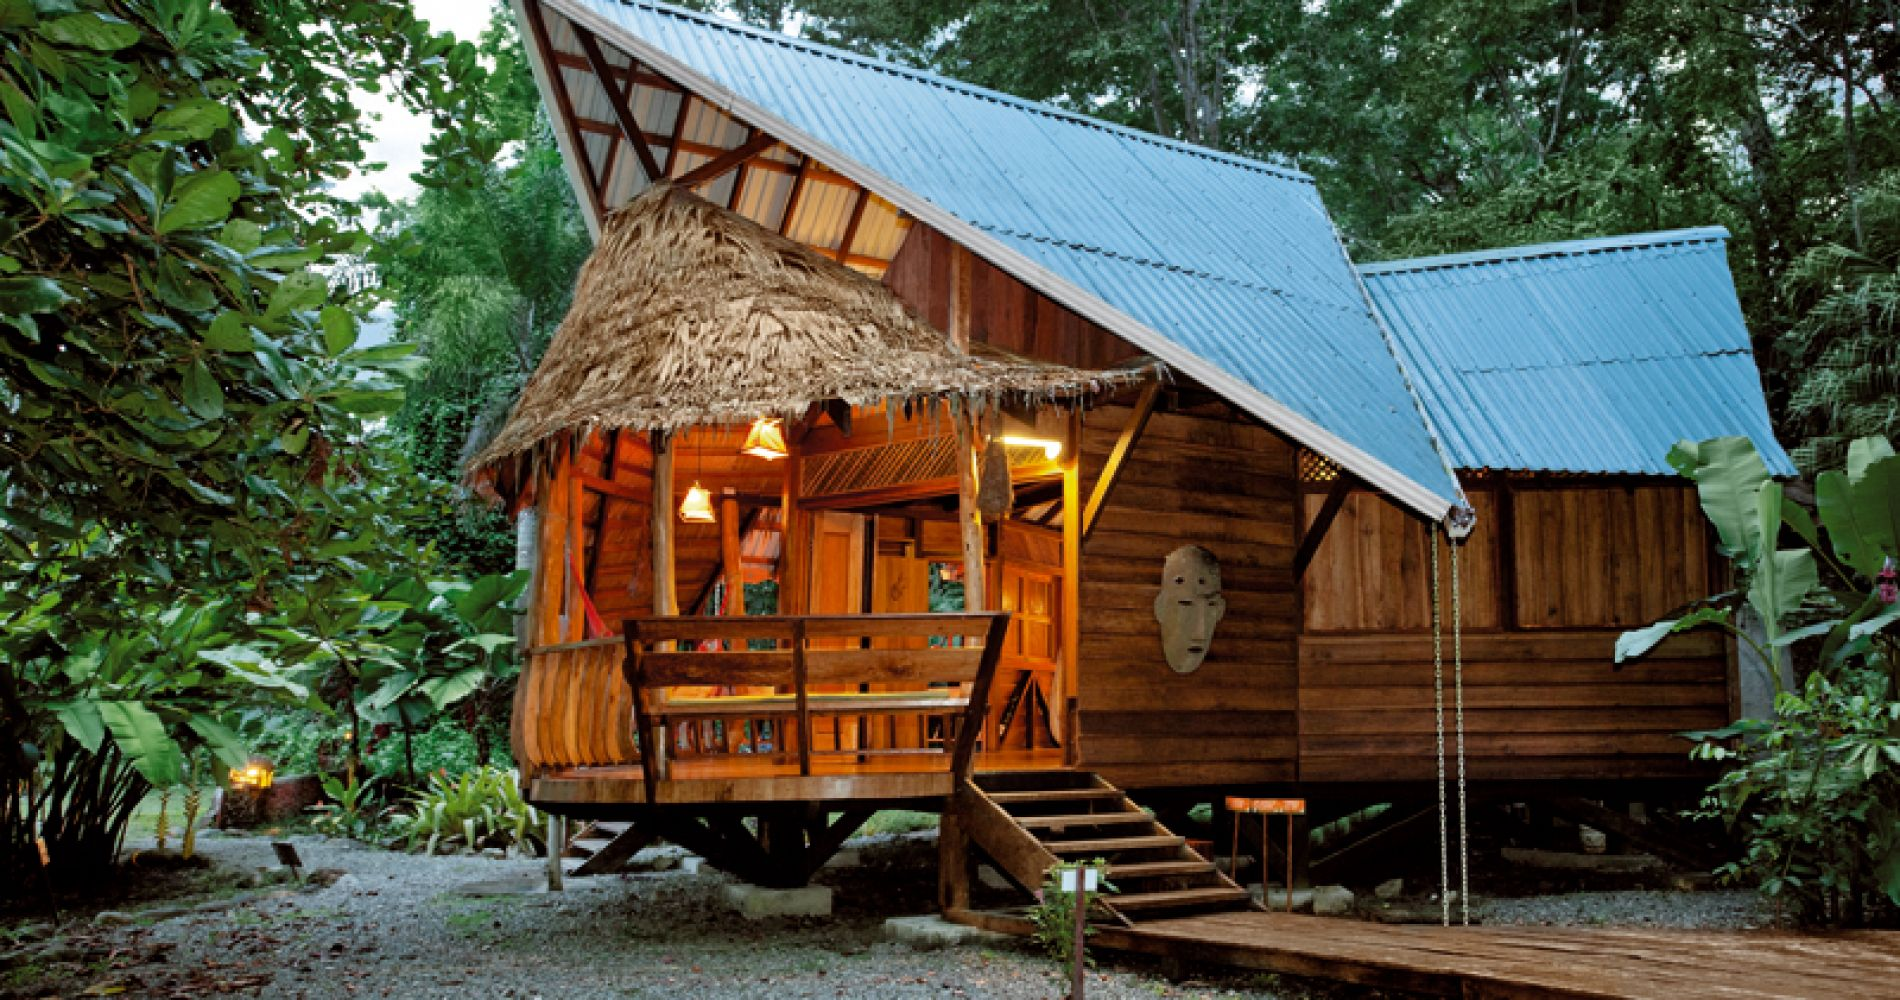 Relaxing Overnight Stay Treehouse Beach, Costa Rica Tinggly Experience Gifts